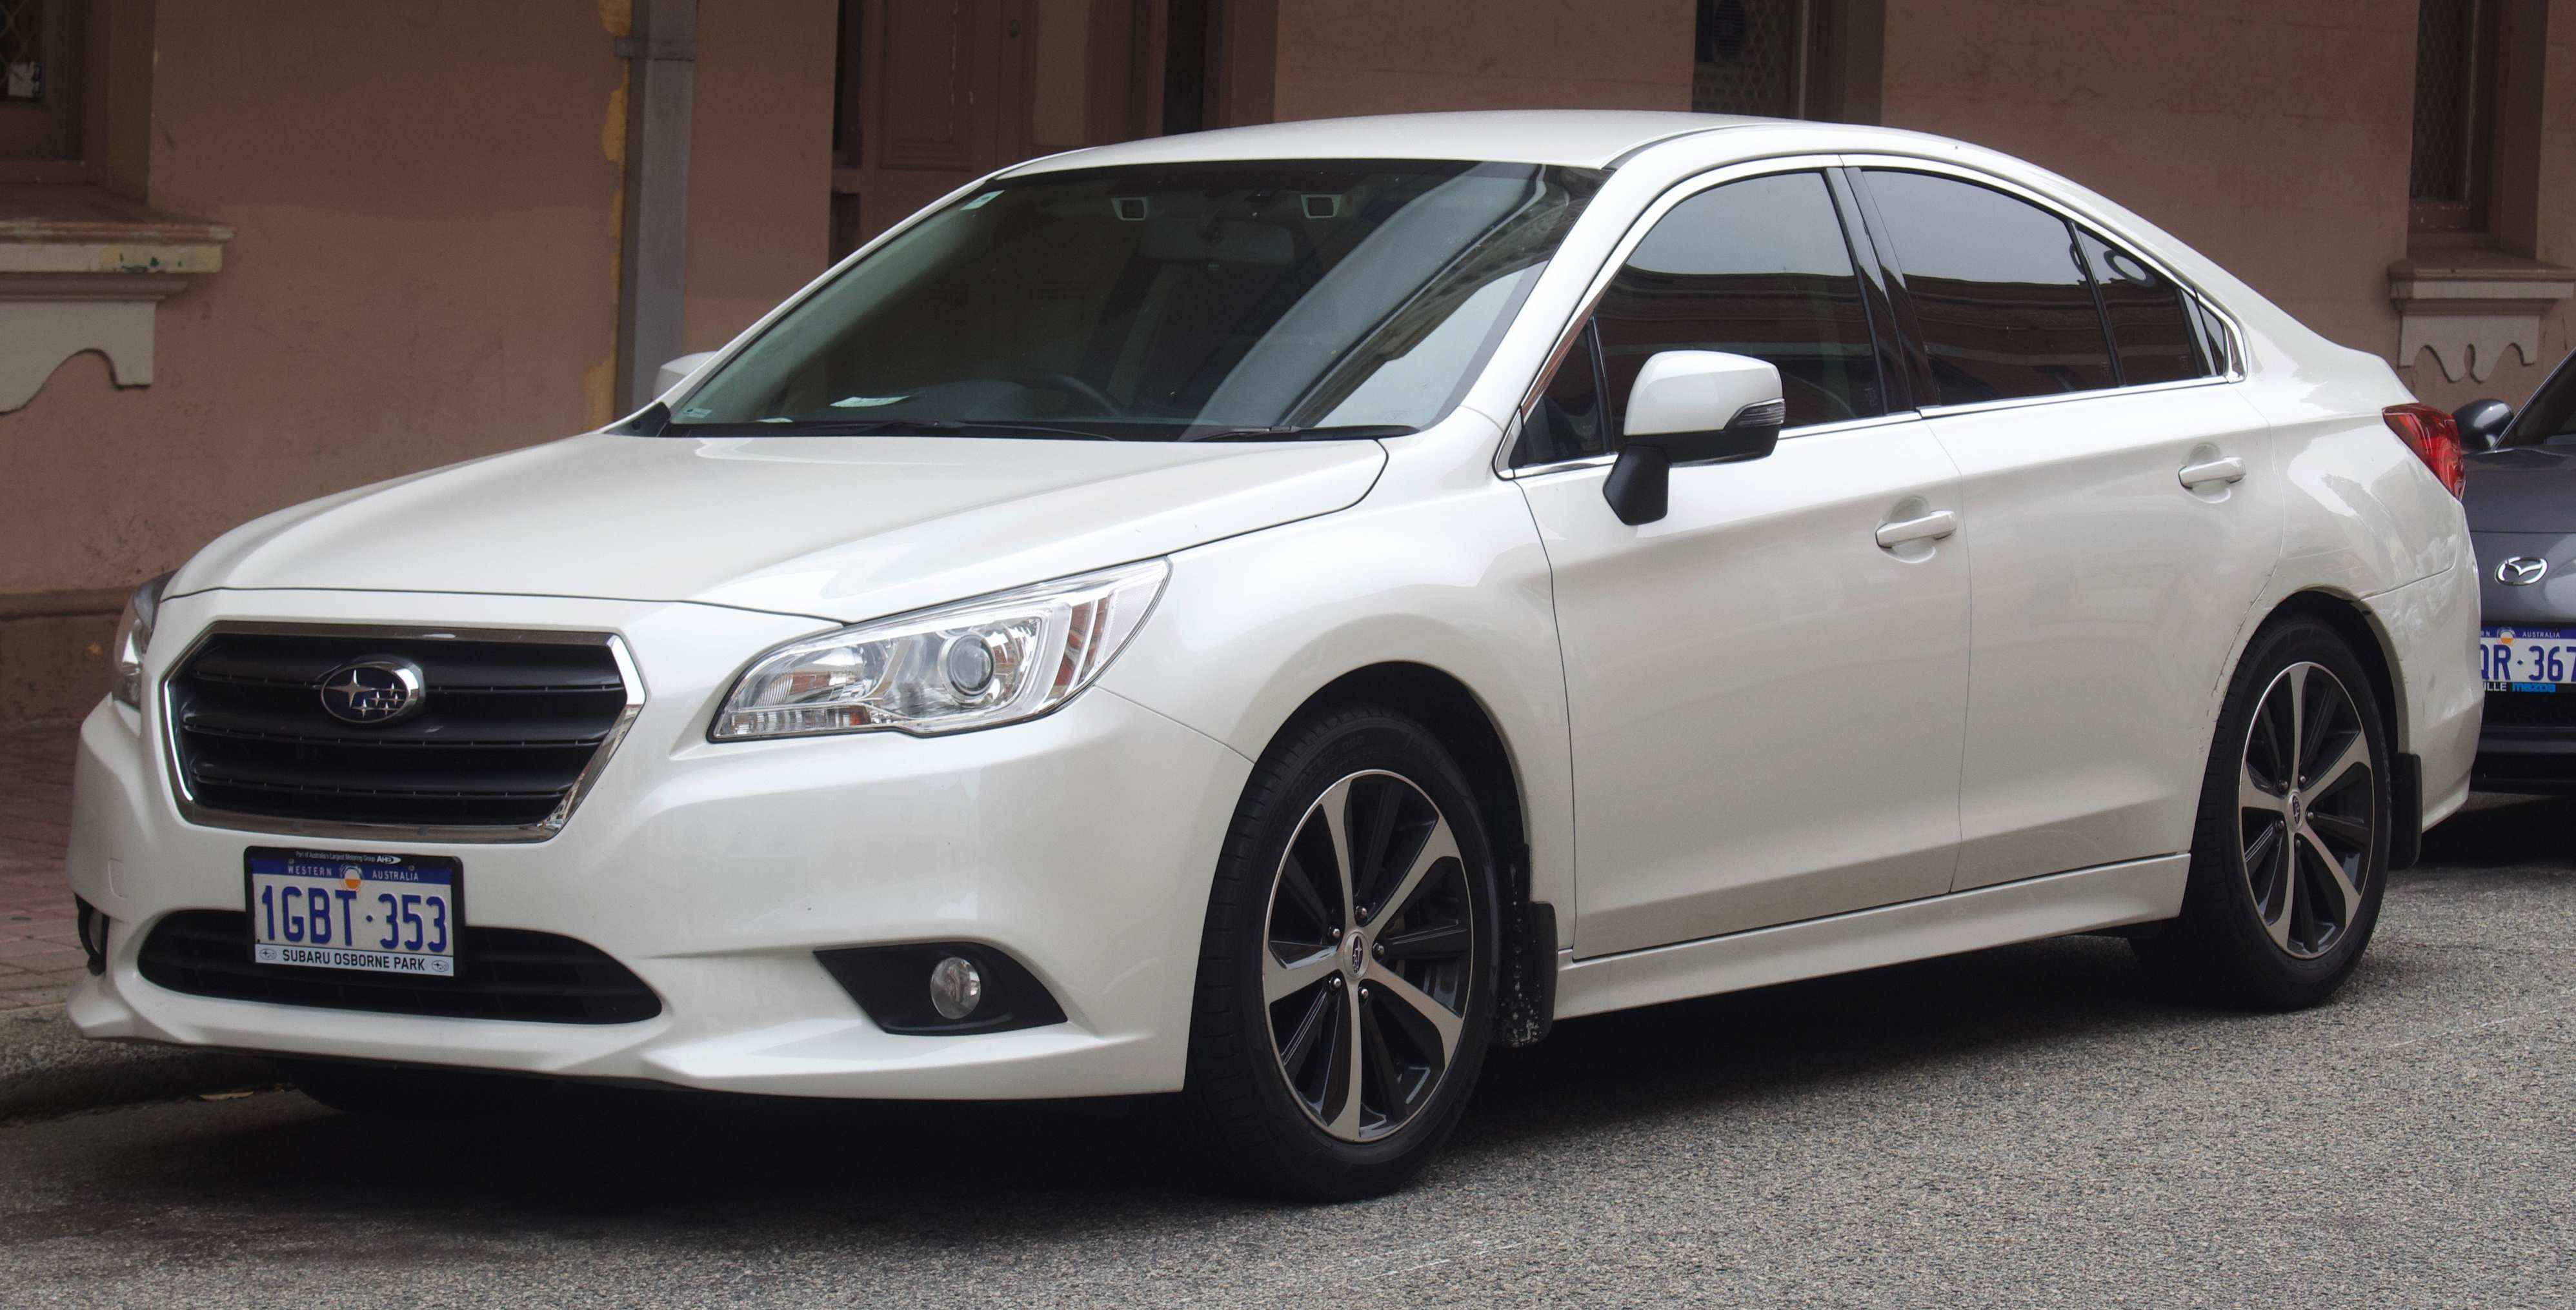 12 All New The Subaru Legacy Gt 2019 Performance Price And Release Date